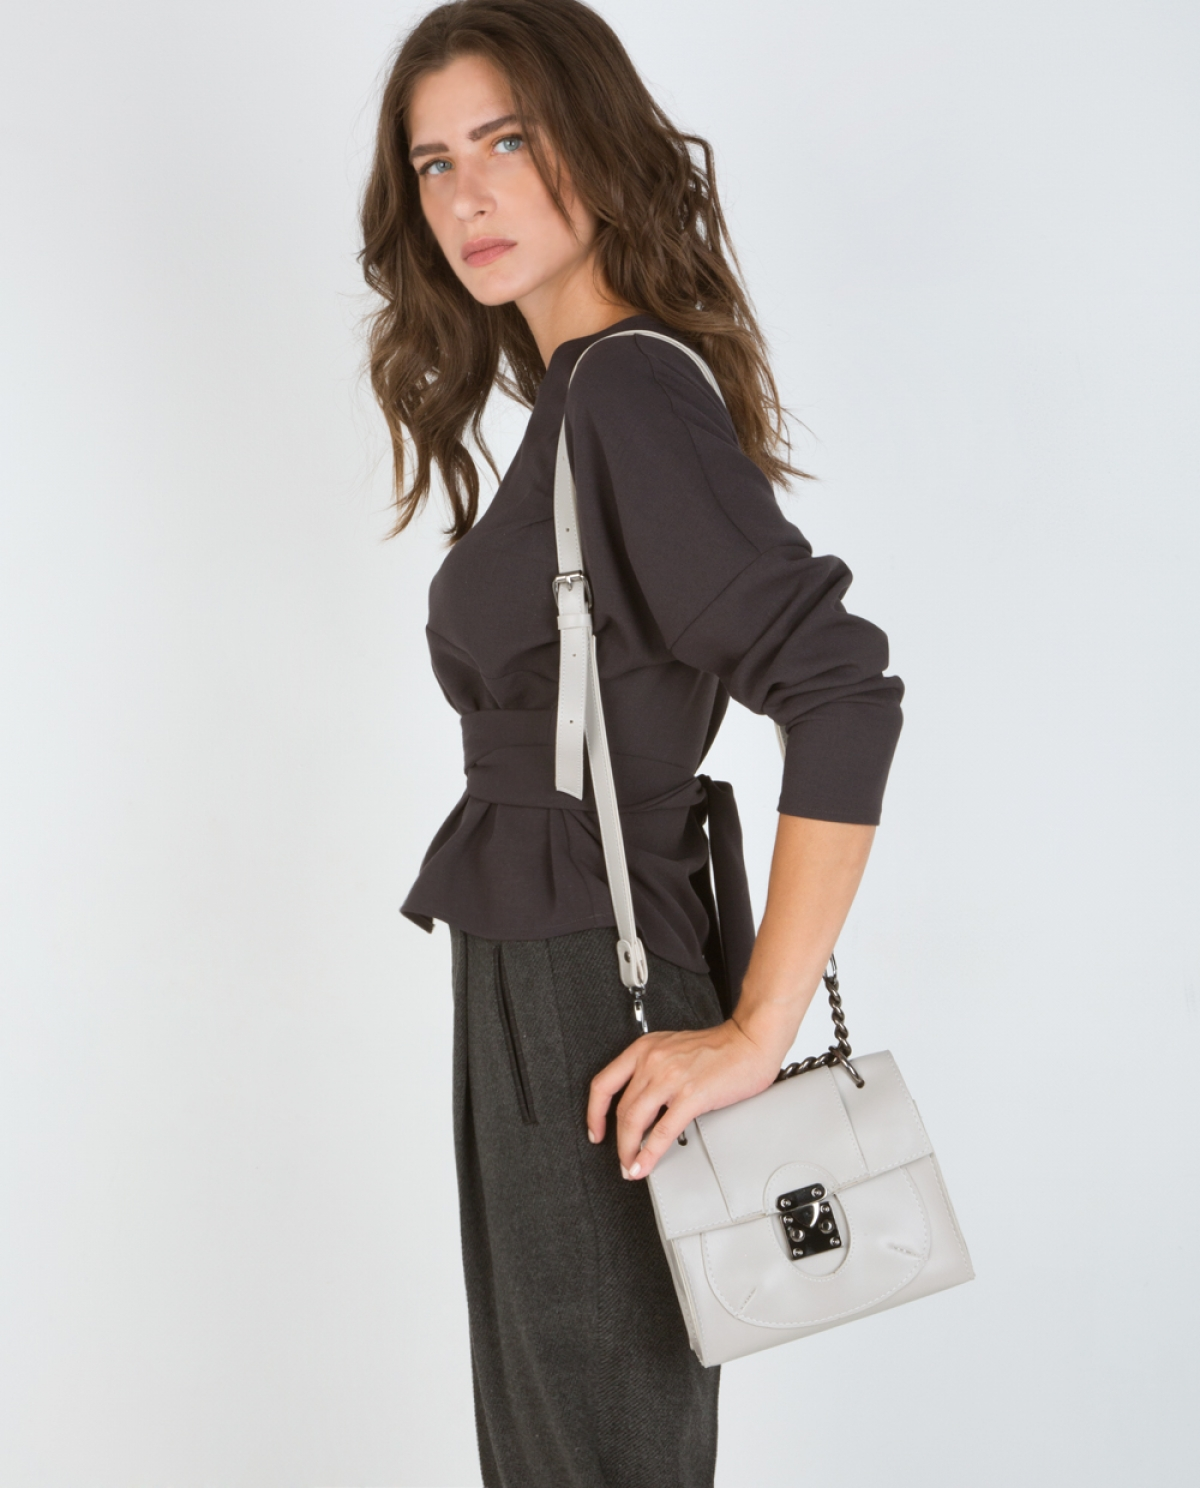 LADY' Grey Leather Shoulder Bag